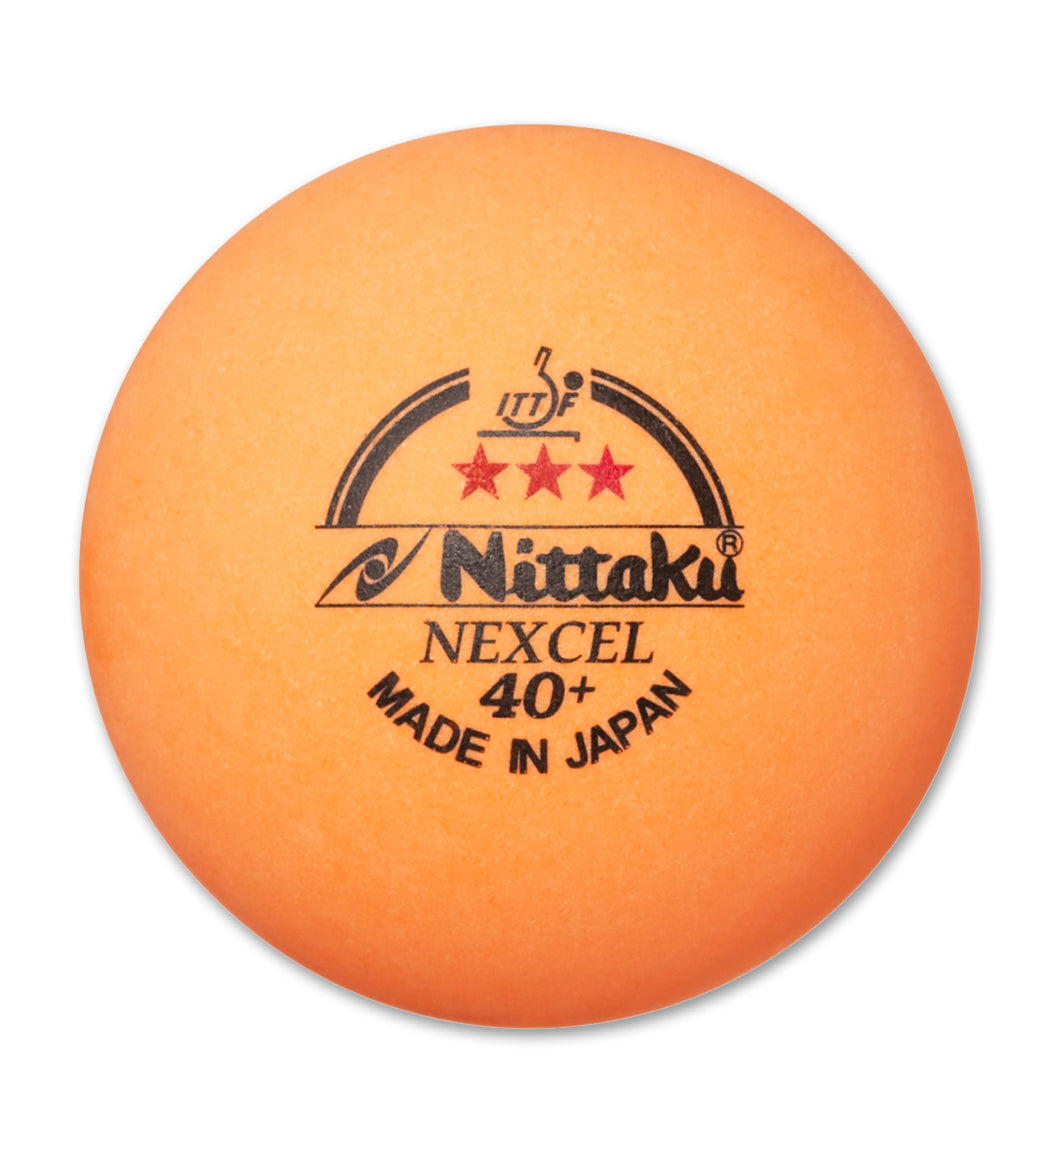 Nittaku 3-Star Nexcel 40+ Orange (6 Pack)